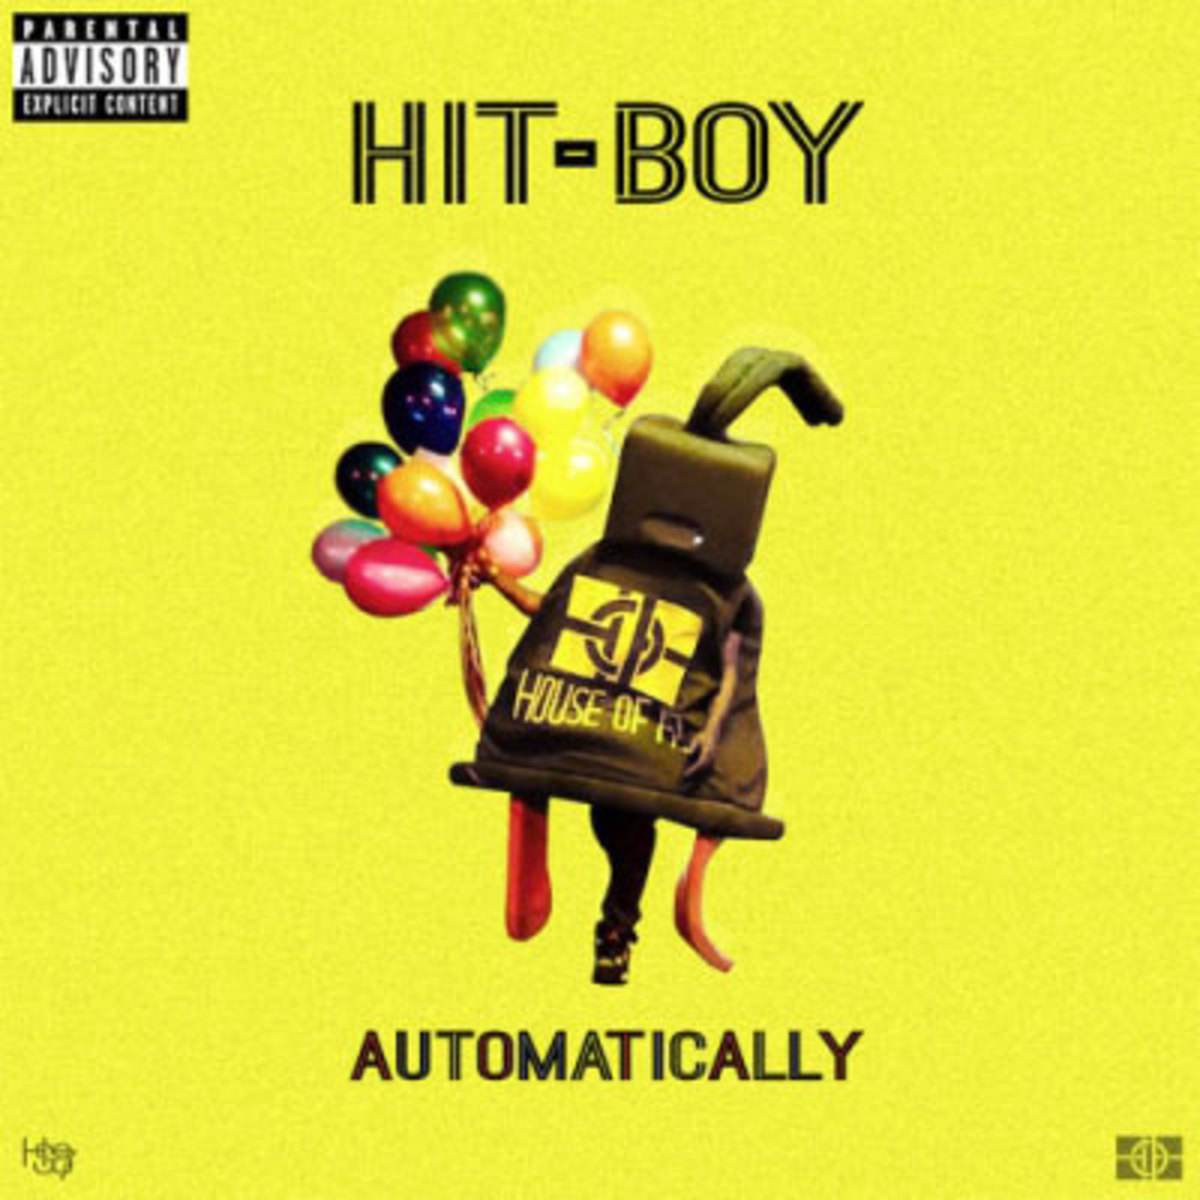 hit-boy-automatically.jpg